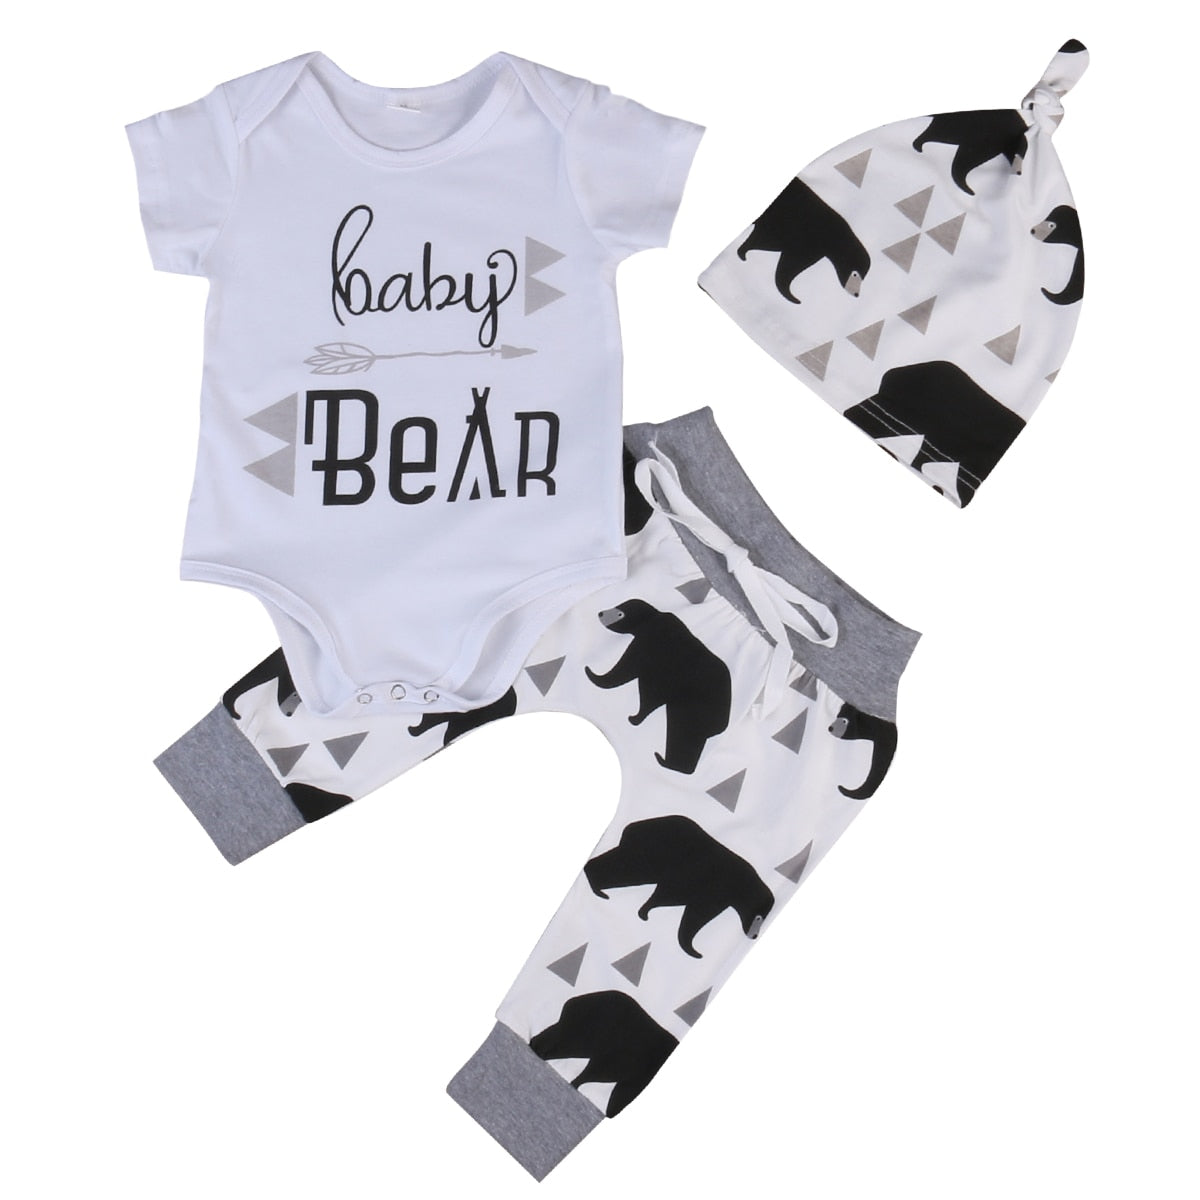 Summer 2017 Newborn Baby Boys Girls Kids Clothes Romper T-shirt Tops +Long Pants+Hat Outfits Sets-eosegal